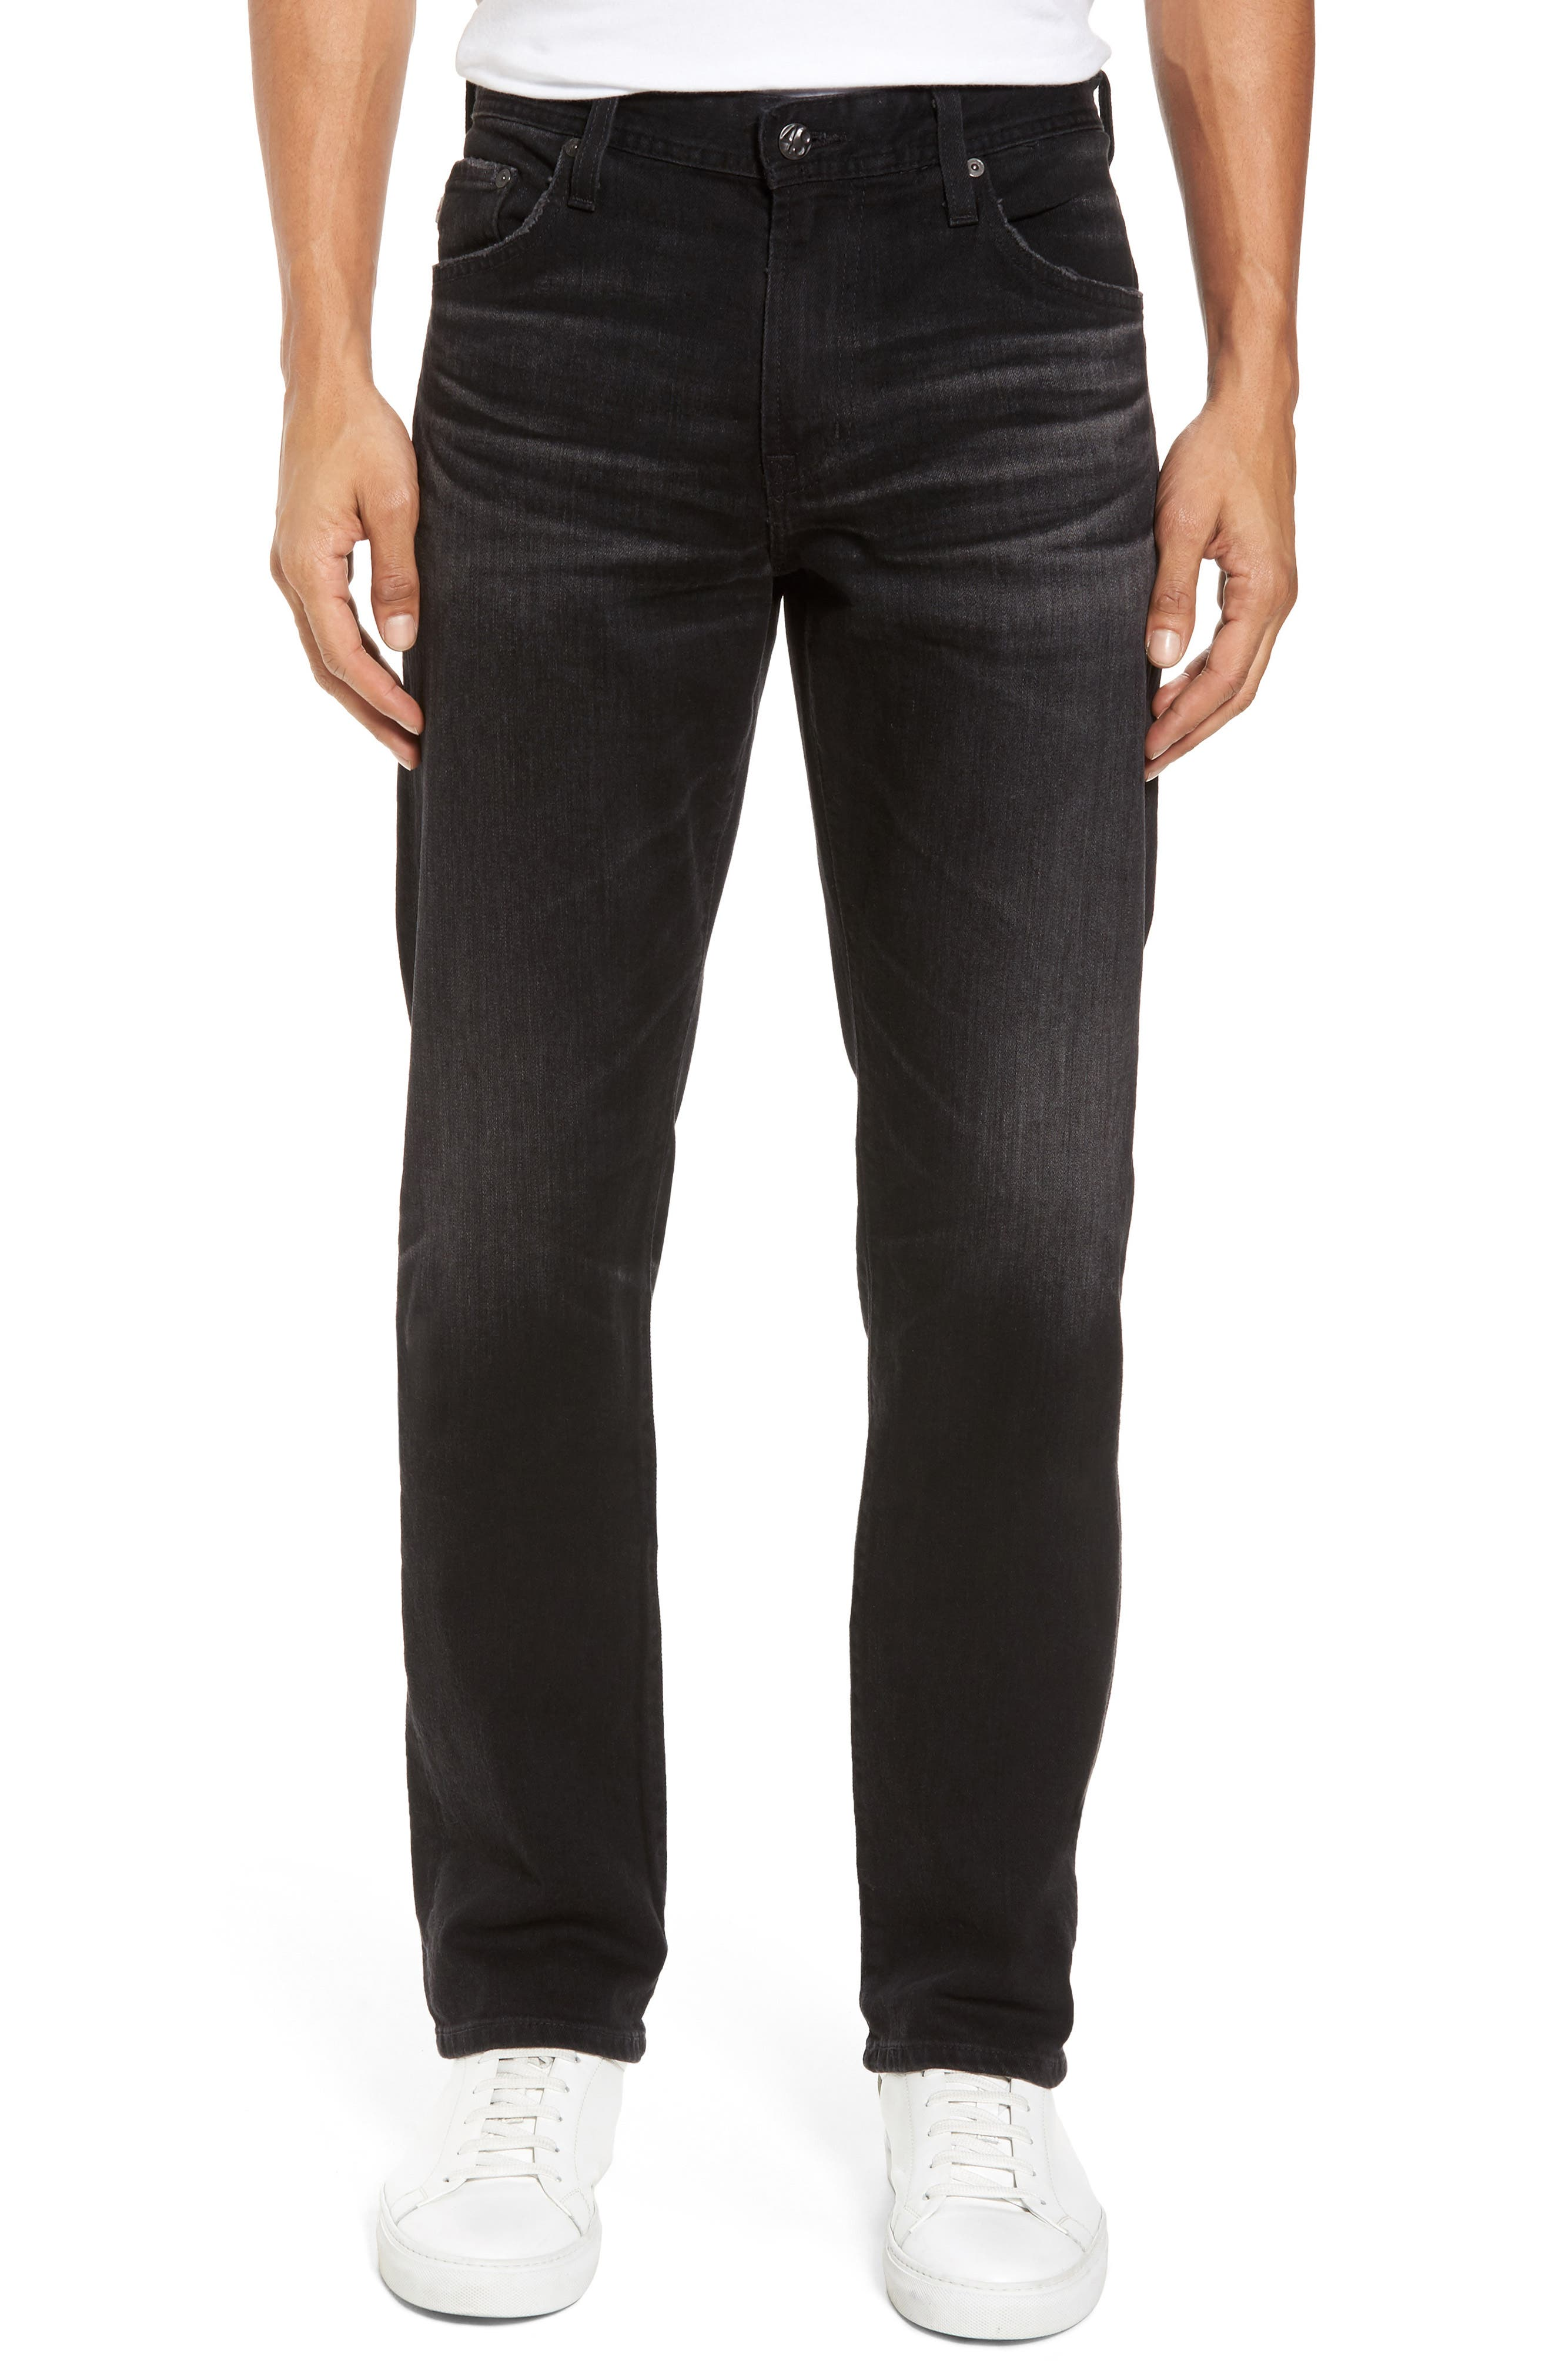 Graduate Slim Straight Fit Jeans,                         Main,                         color, 4 Years Down